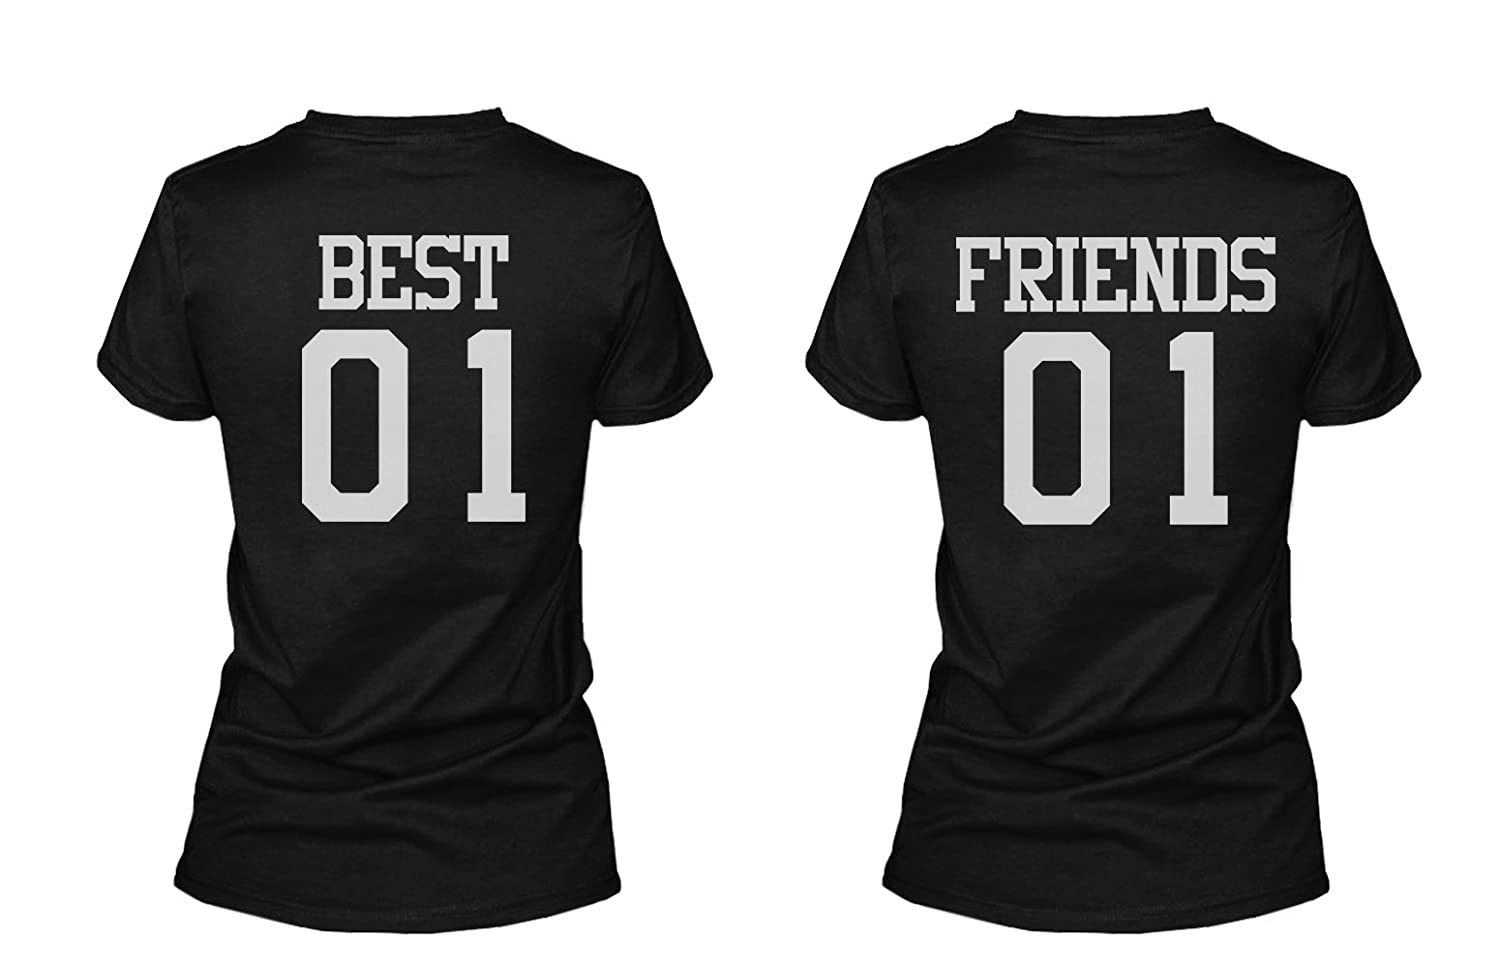 365 Printing Best Friends Matching Shirts Halloween Costume Tshirts For Women 365 Printing inc FT035